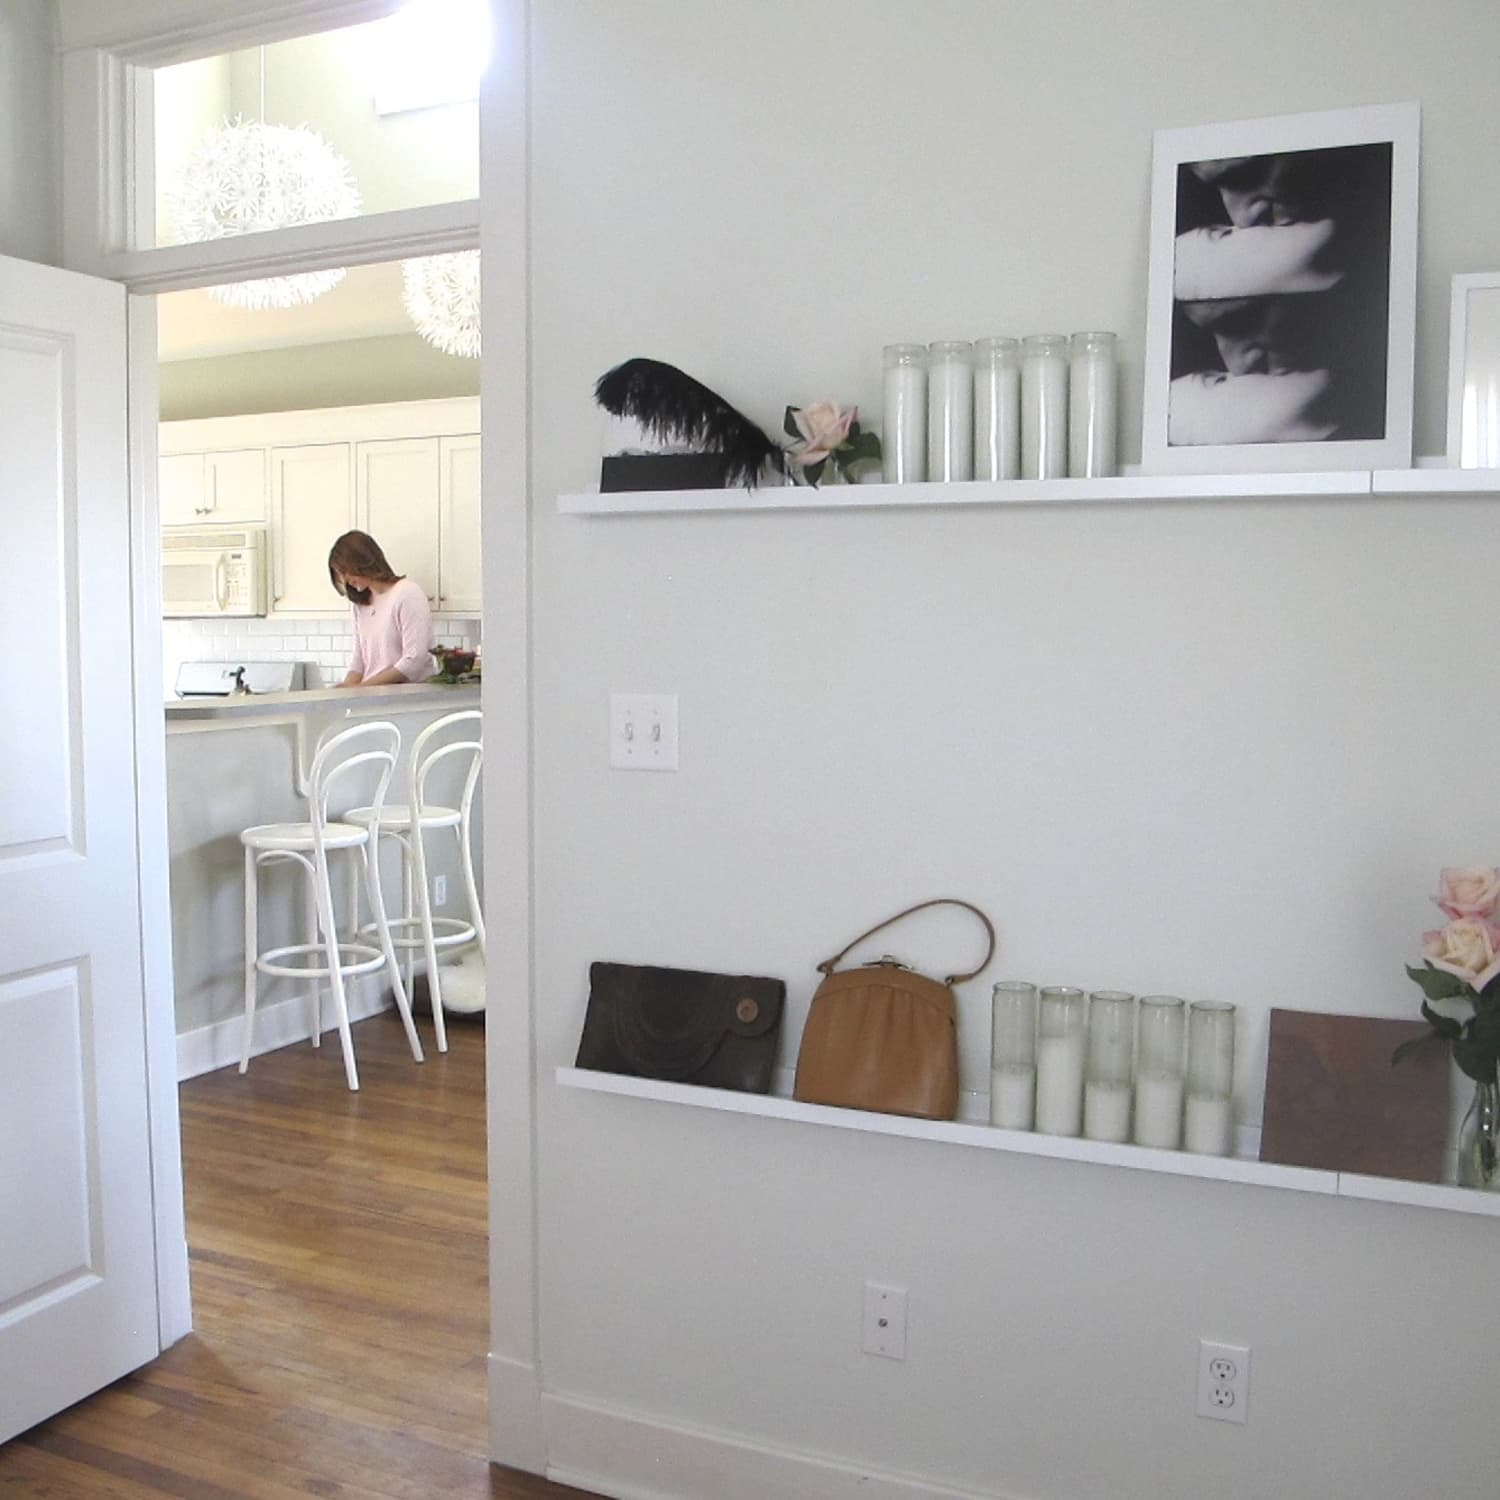 How To Decorate With Ikea S Floating Picture Shelves Apartment Therapy